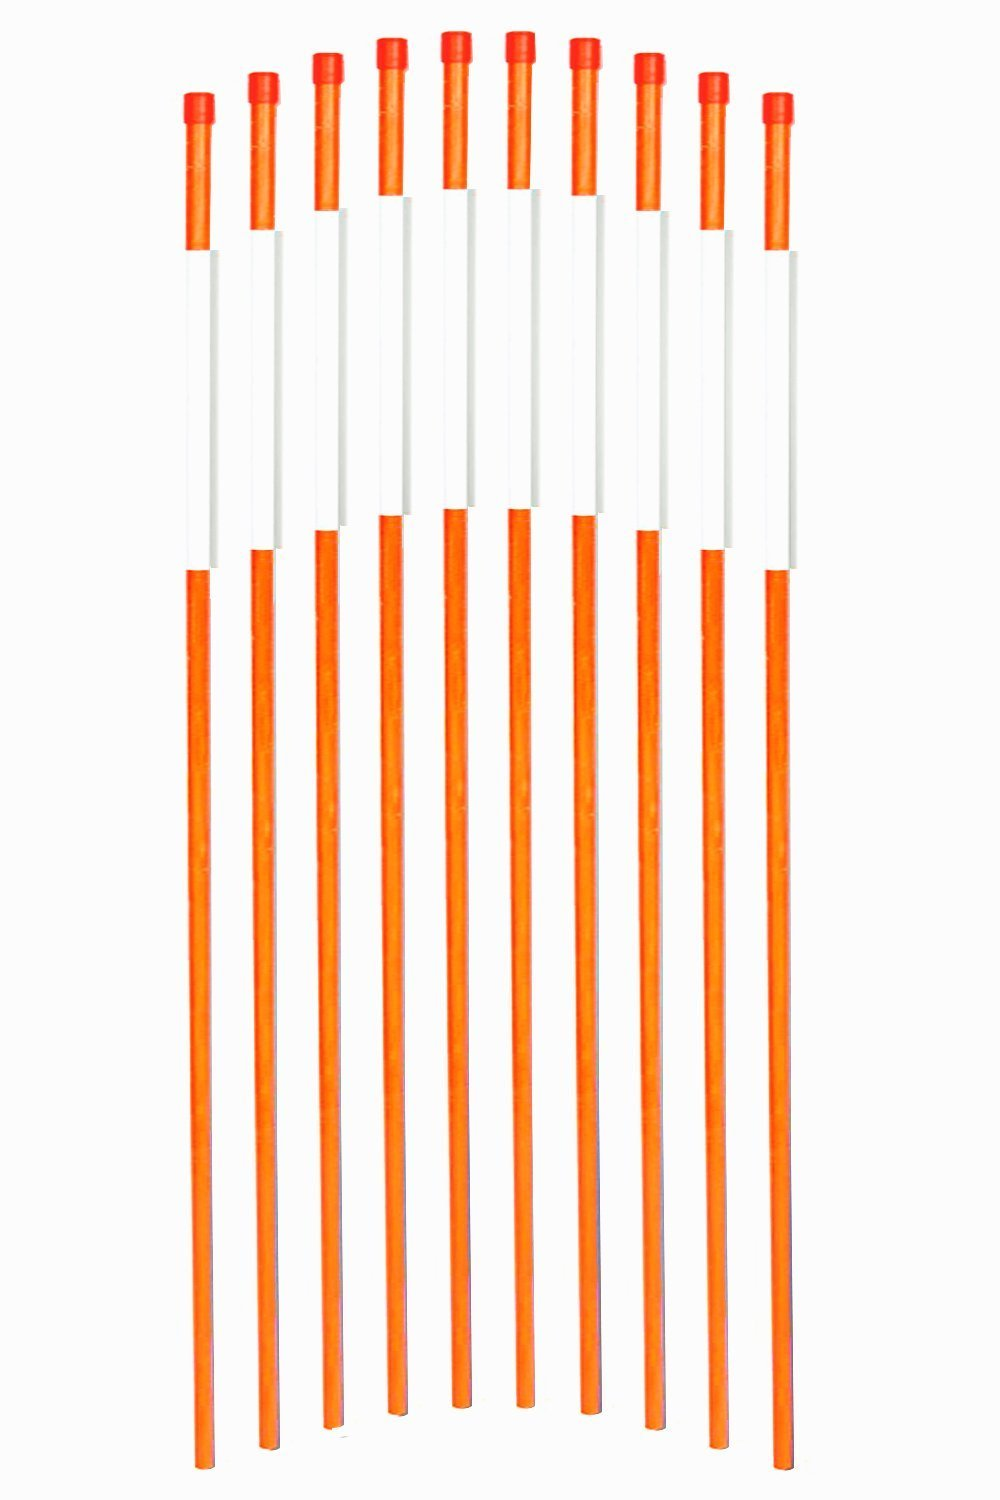 FiberMarker 36-Inch Reflective Driveway Markers Driveway Poles for Easy Visibility at Night 1/4 Inch Diameter Orange, 12 Pack by FiberMarker